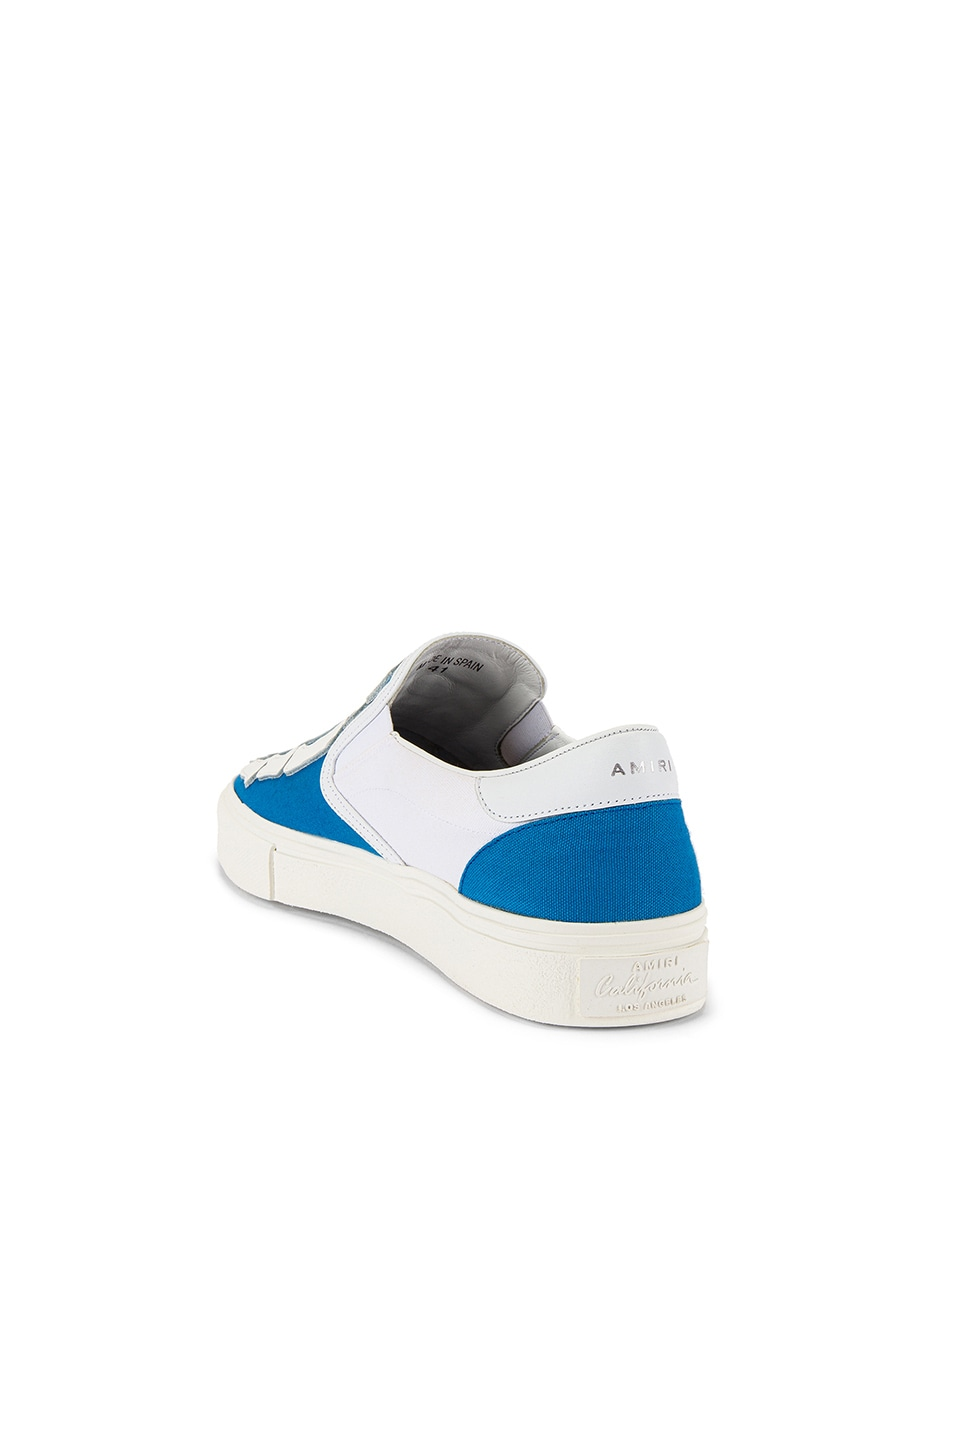 Image 3 of Amiri Skel Toe Slip On in Blue & White & White